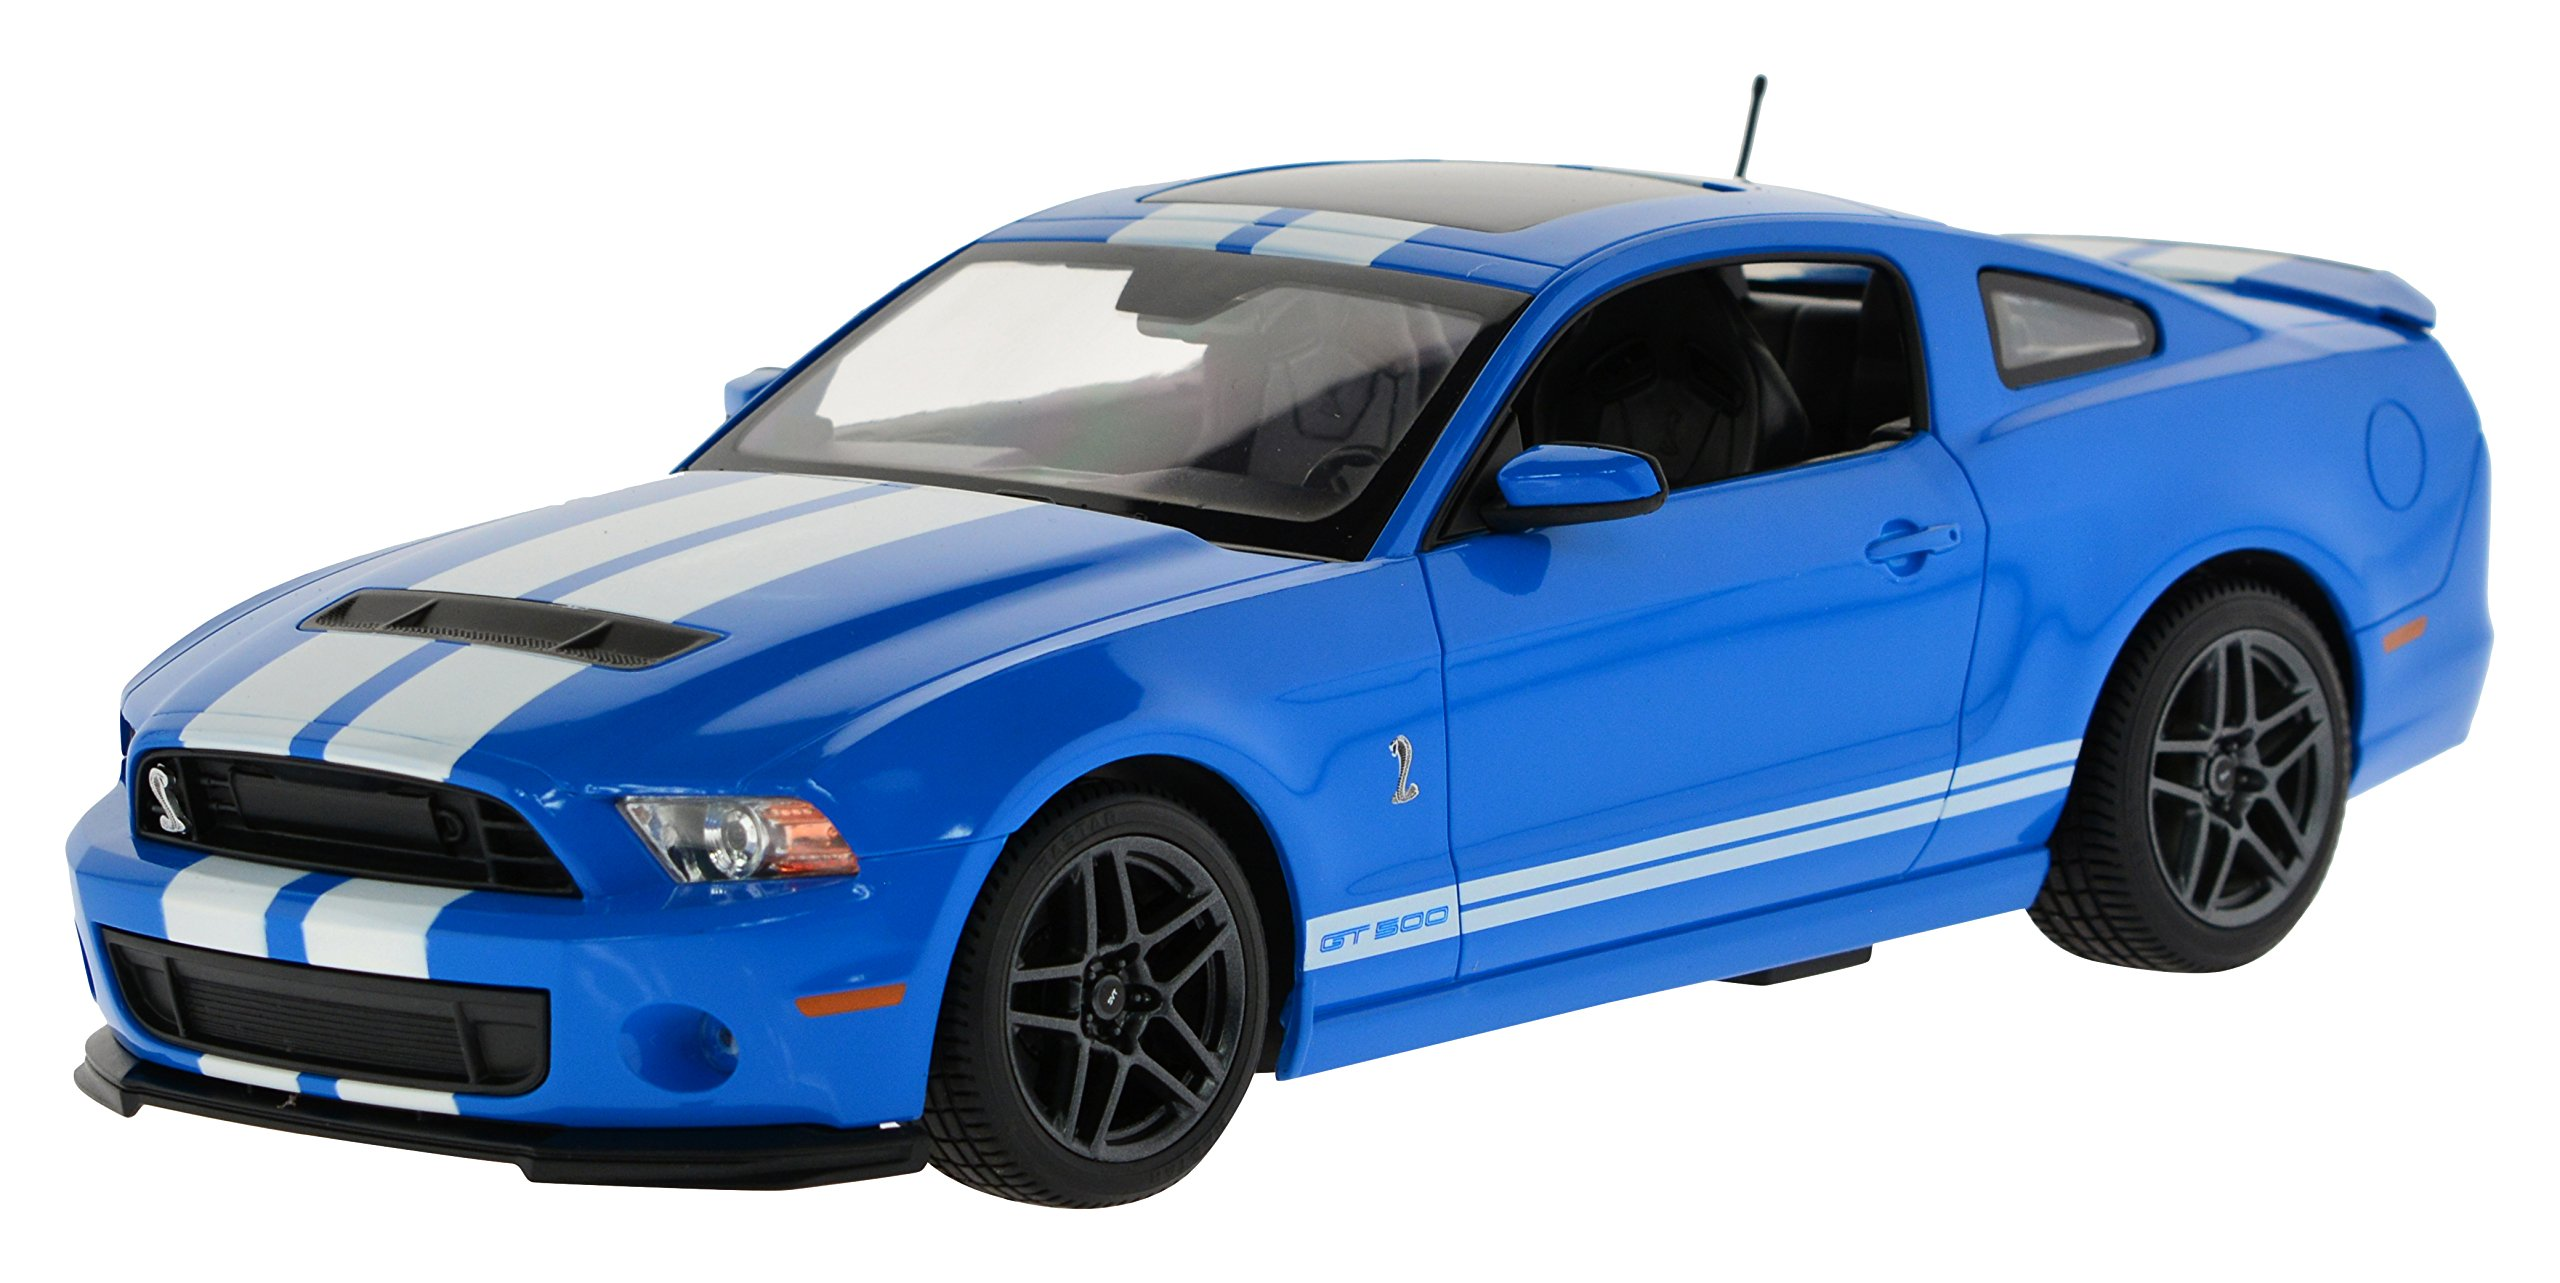 Carmel 1:14 Ford Shelby Gt500 2.4Ghz with Lights Rechargeable Battery, Blue by Carmel